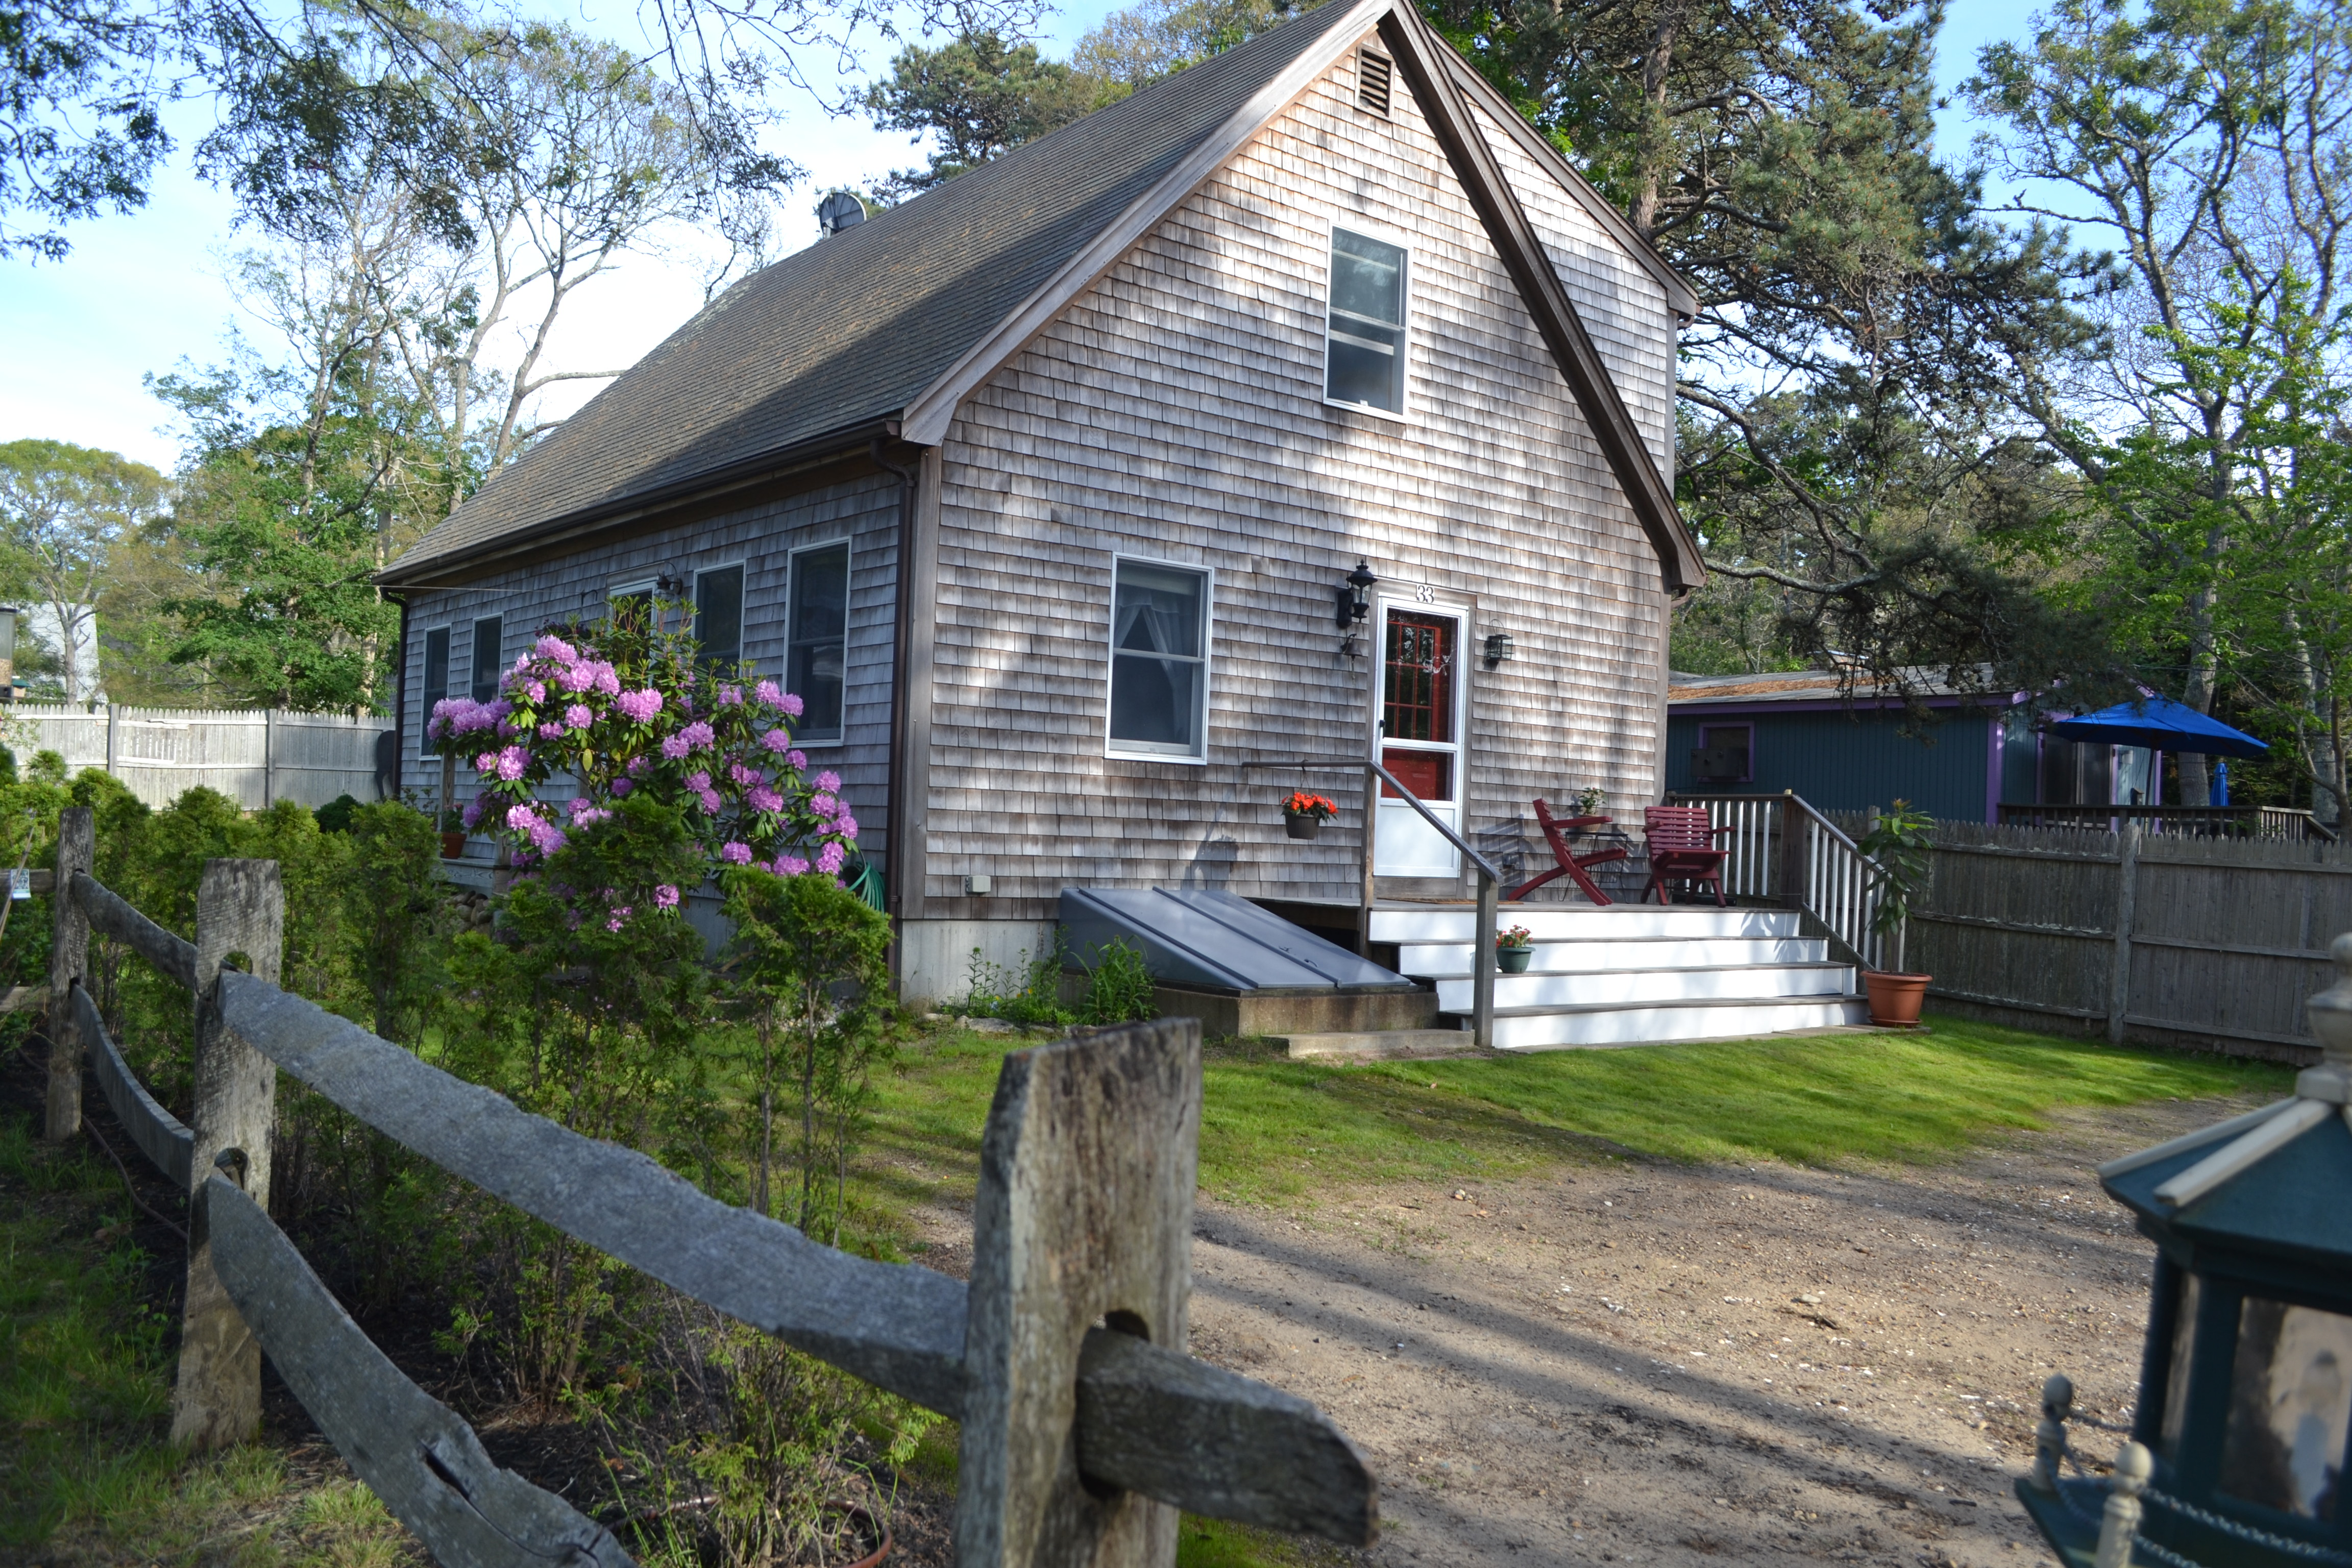 Recently Sold Marthas Vineyard Real Estate Mv Homes Home Fun Circuits June 2012 Terrific Location A Mile Or Less To Oak Bluffs Harbor Famous Circuit Avenuewhere All The Shops Restaurants And Activity